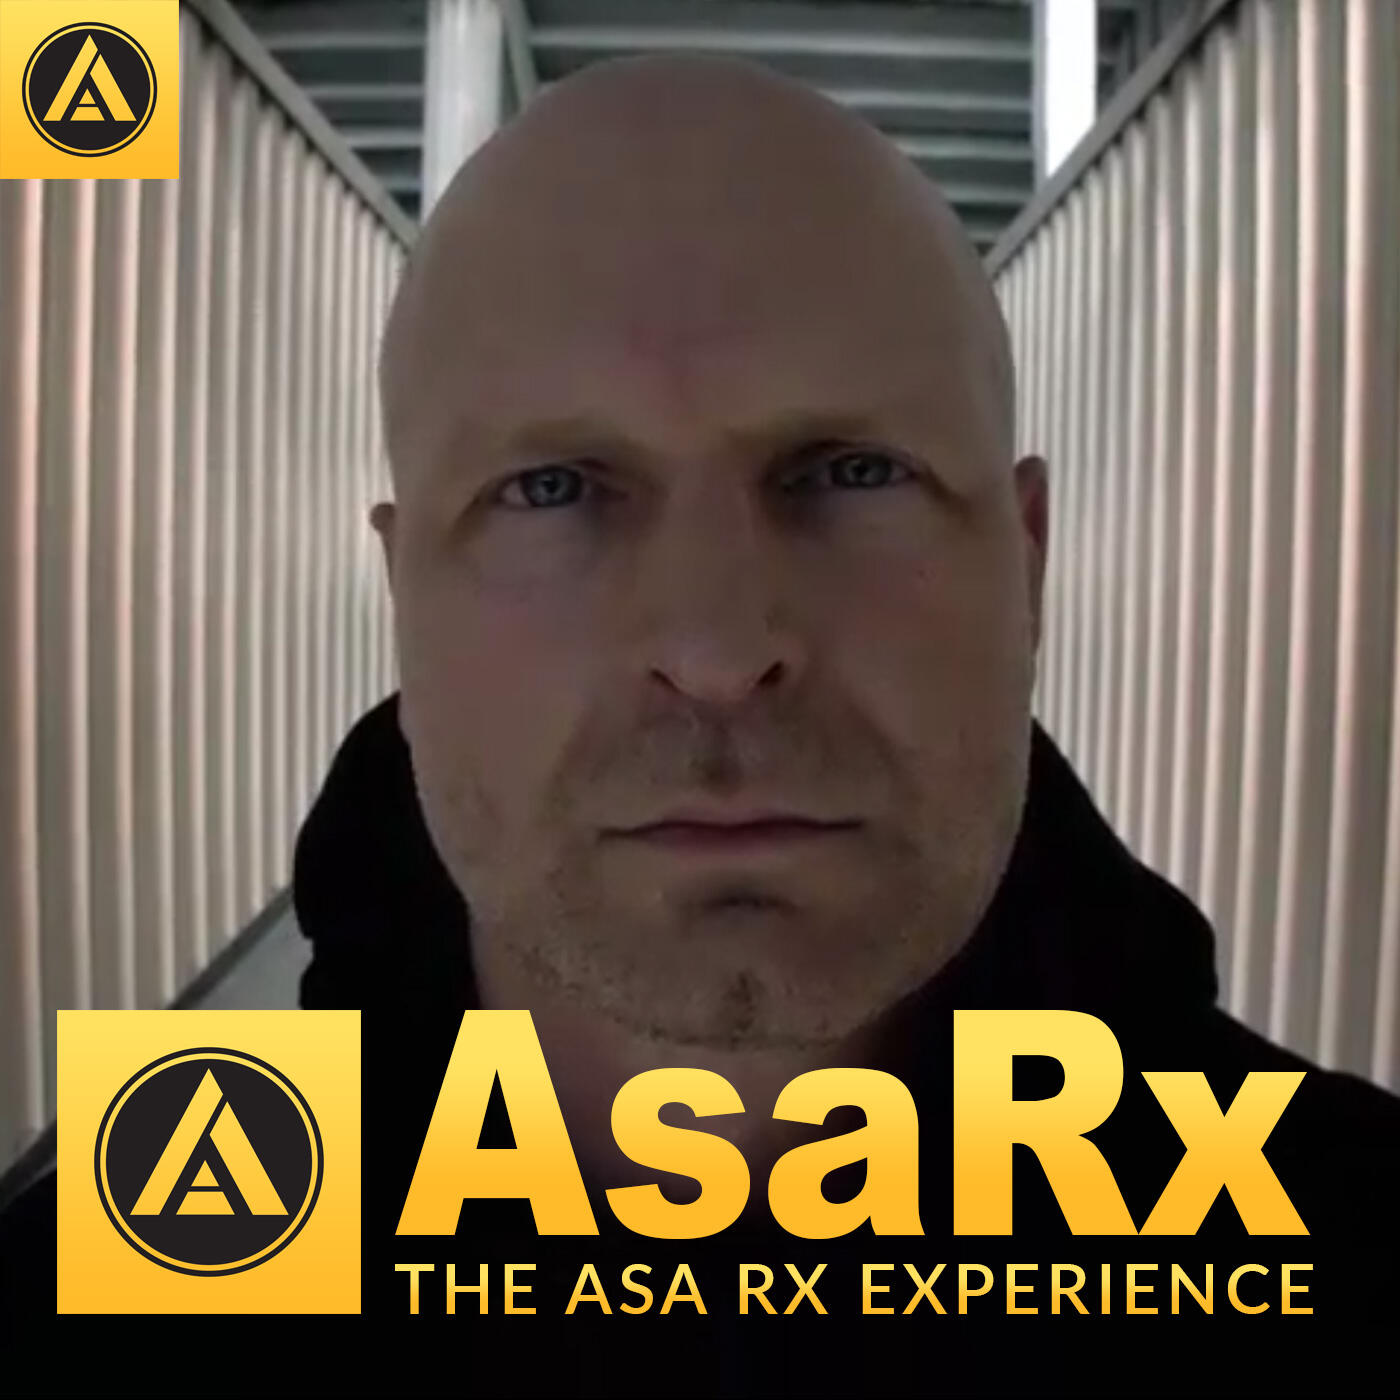 The Asa Rx Experience